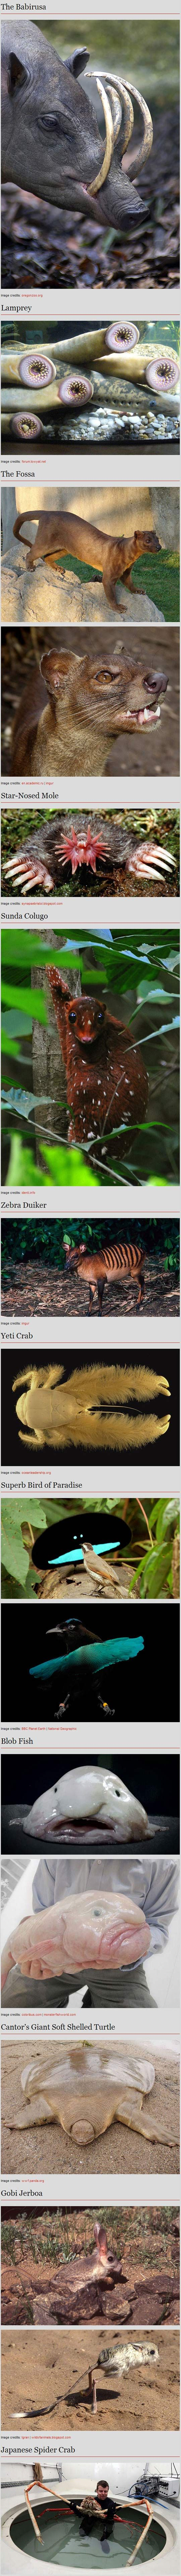 Very strange animals…Some of these are kind of scary